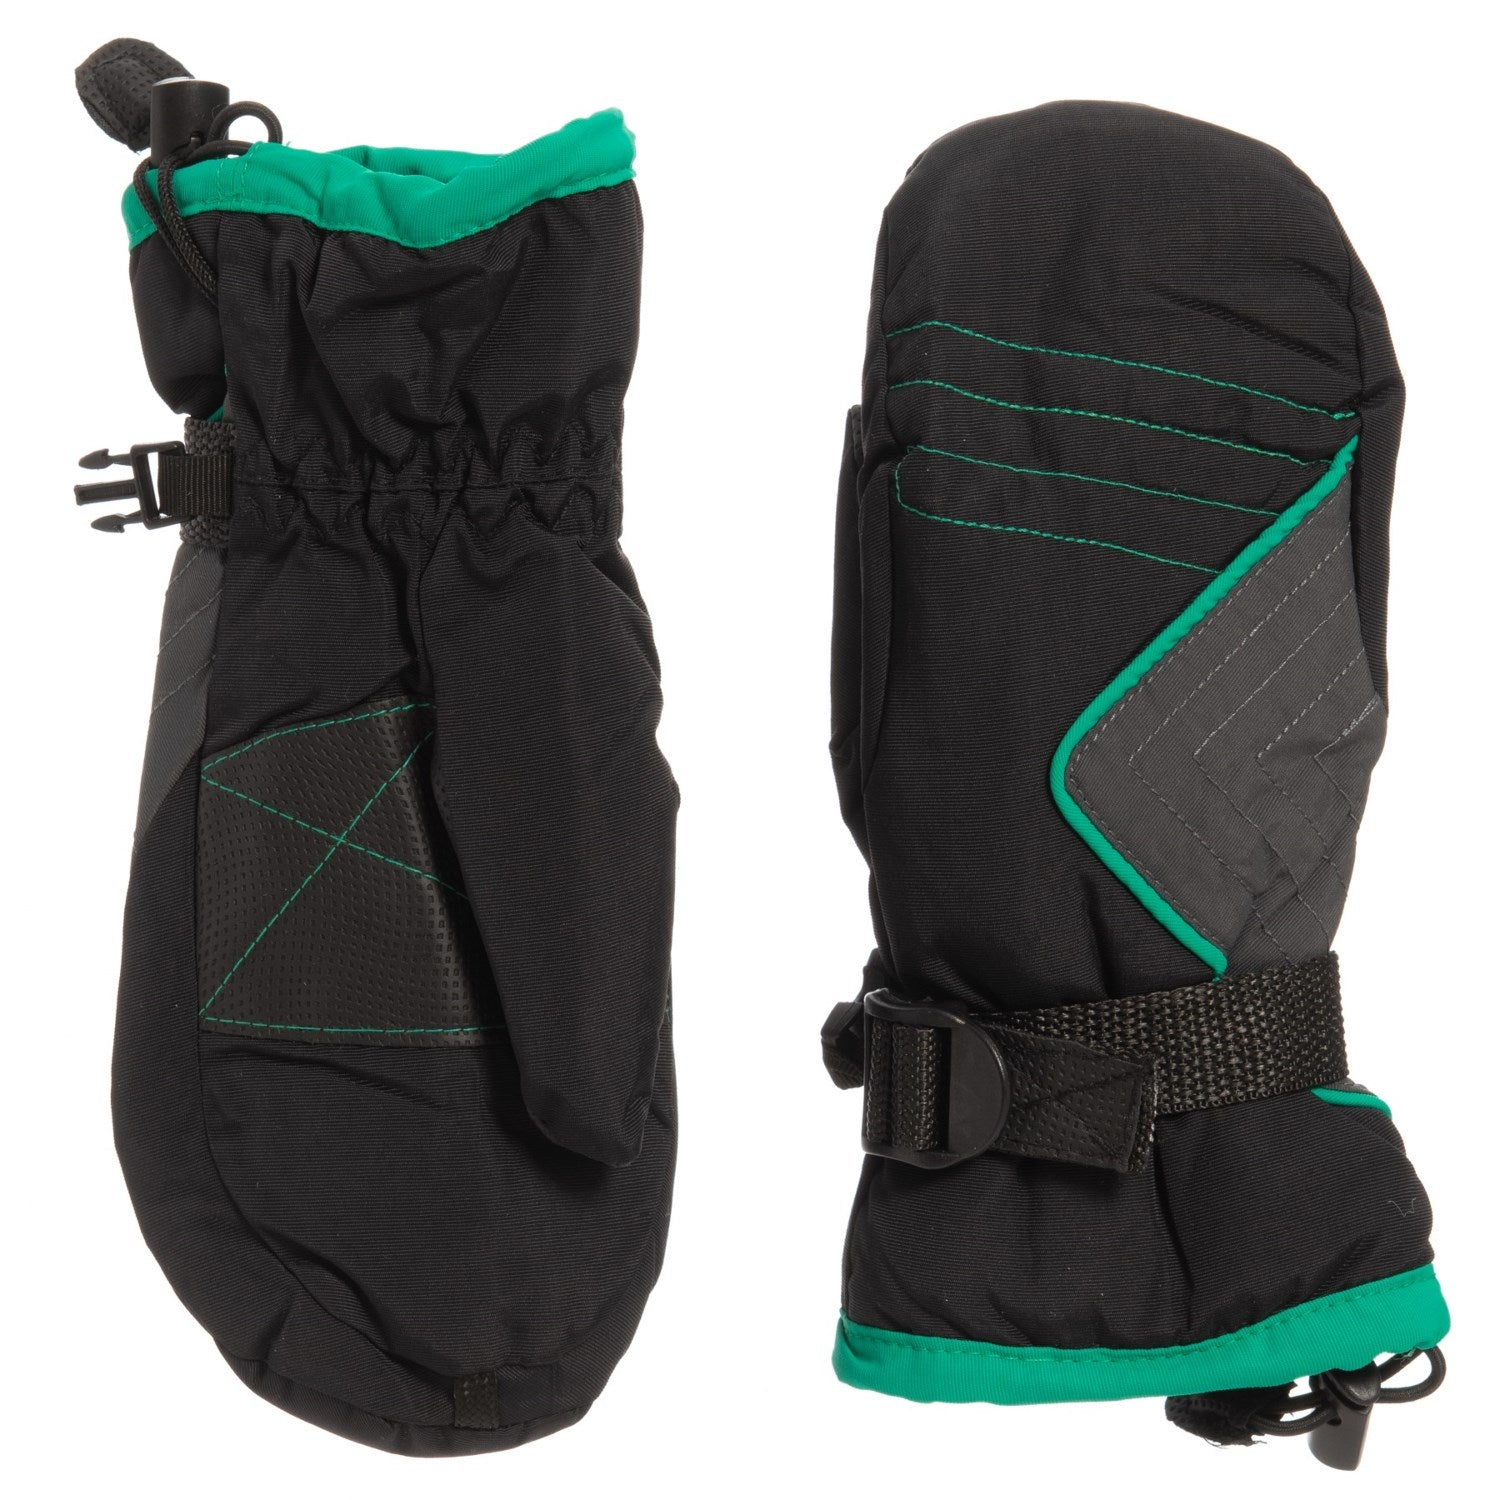 Igloos AquaE4 Snowboard / Ski Mittens - Waterproof, Insulated Black Green Kid Youth S/M - M/L